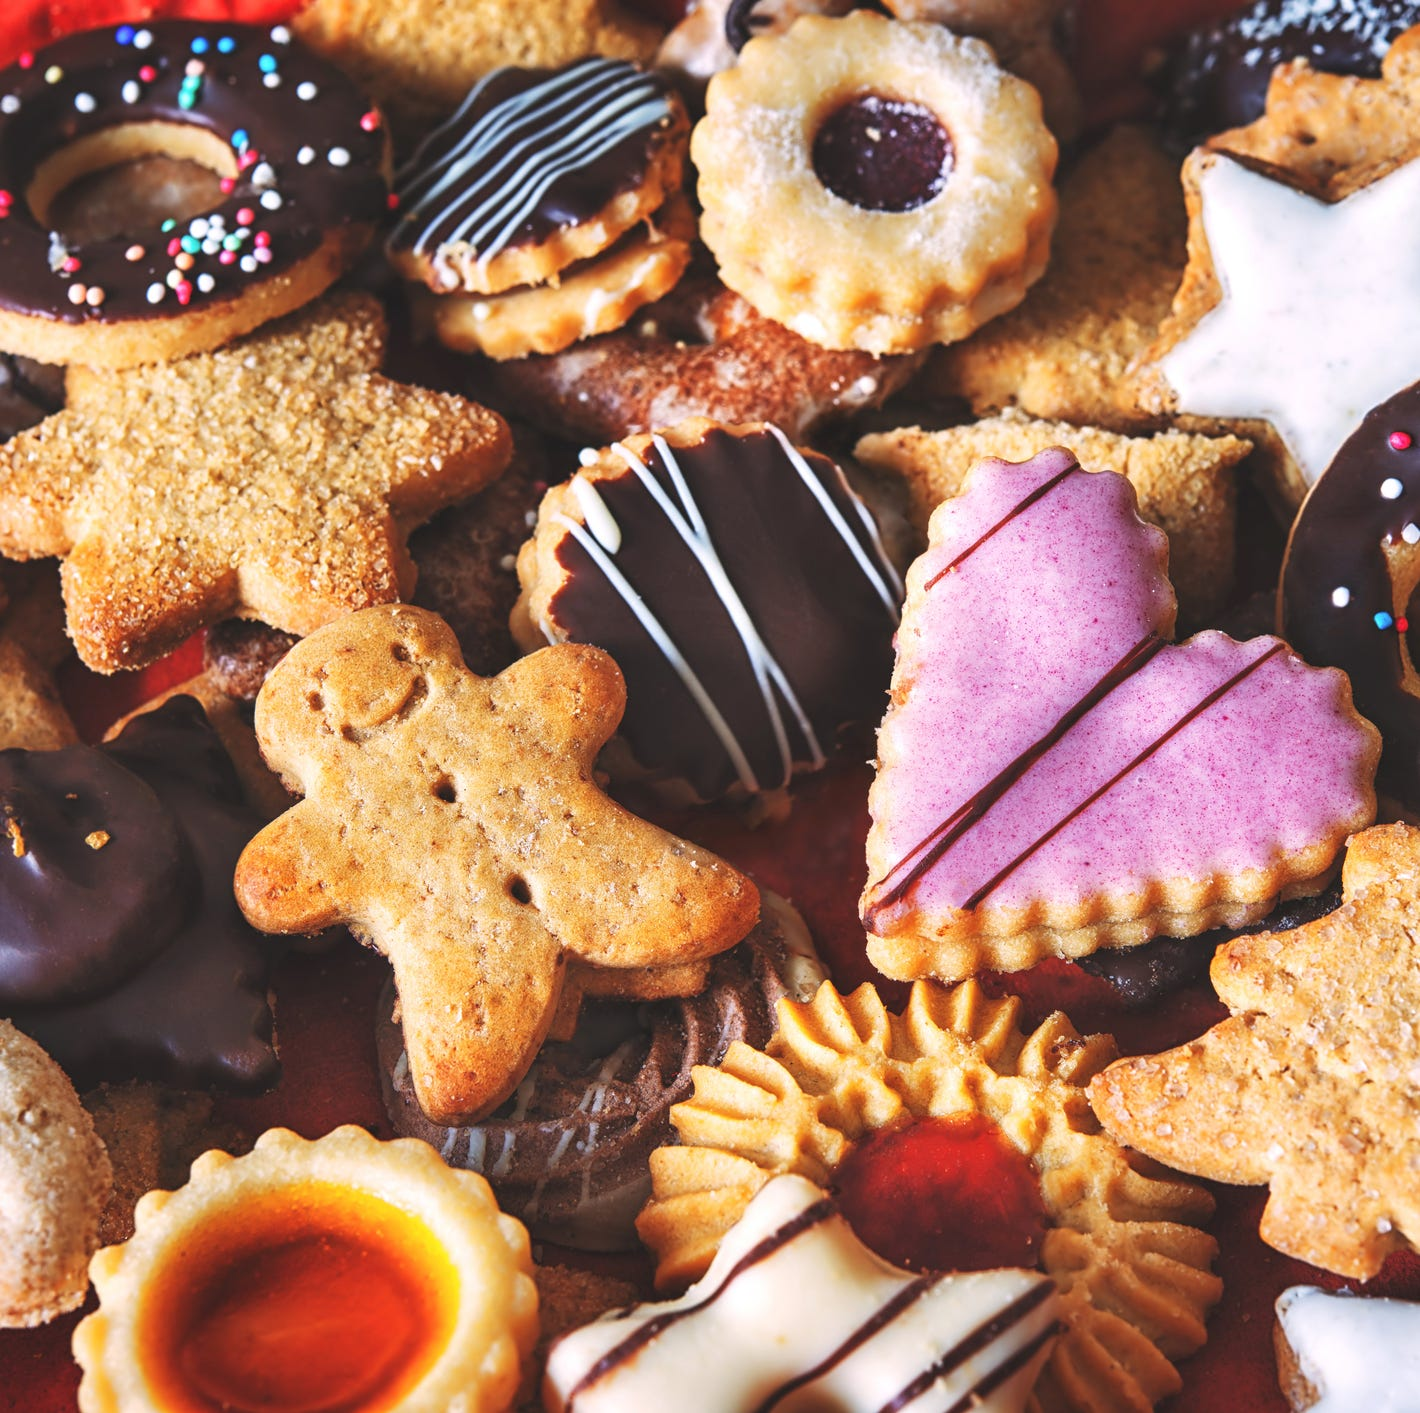 Christmas cookie recipes: LSJ staff offer some of their favorites, with downloadable cards